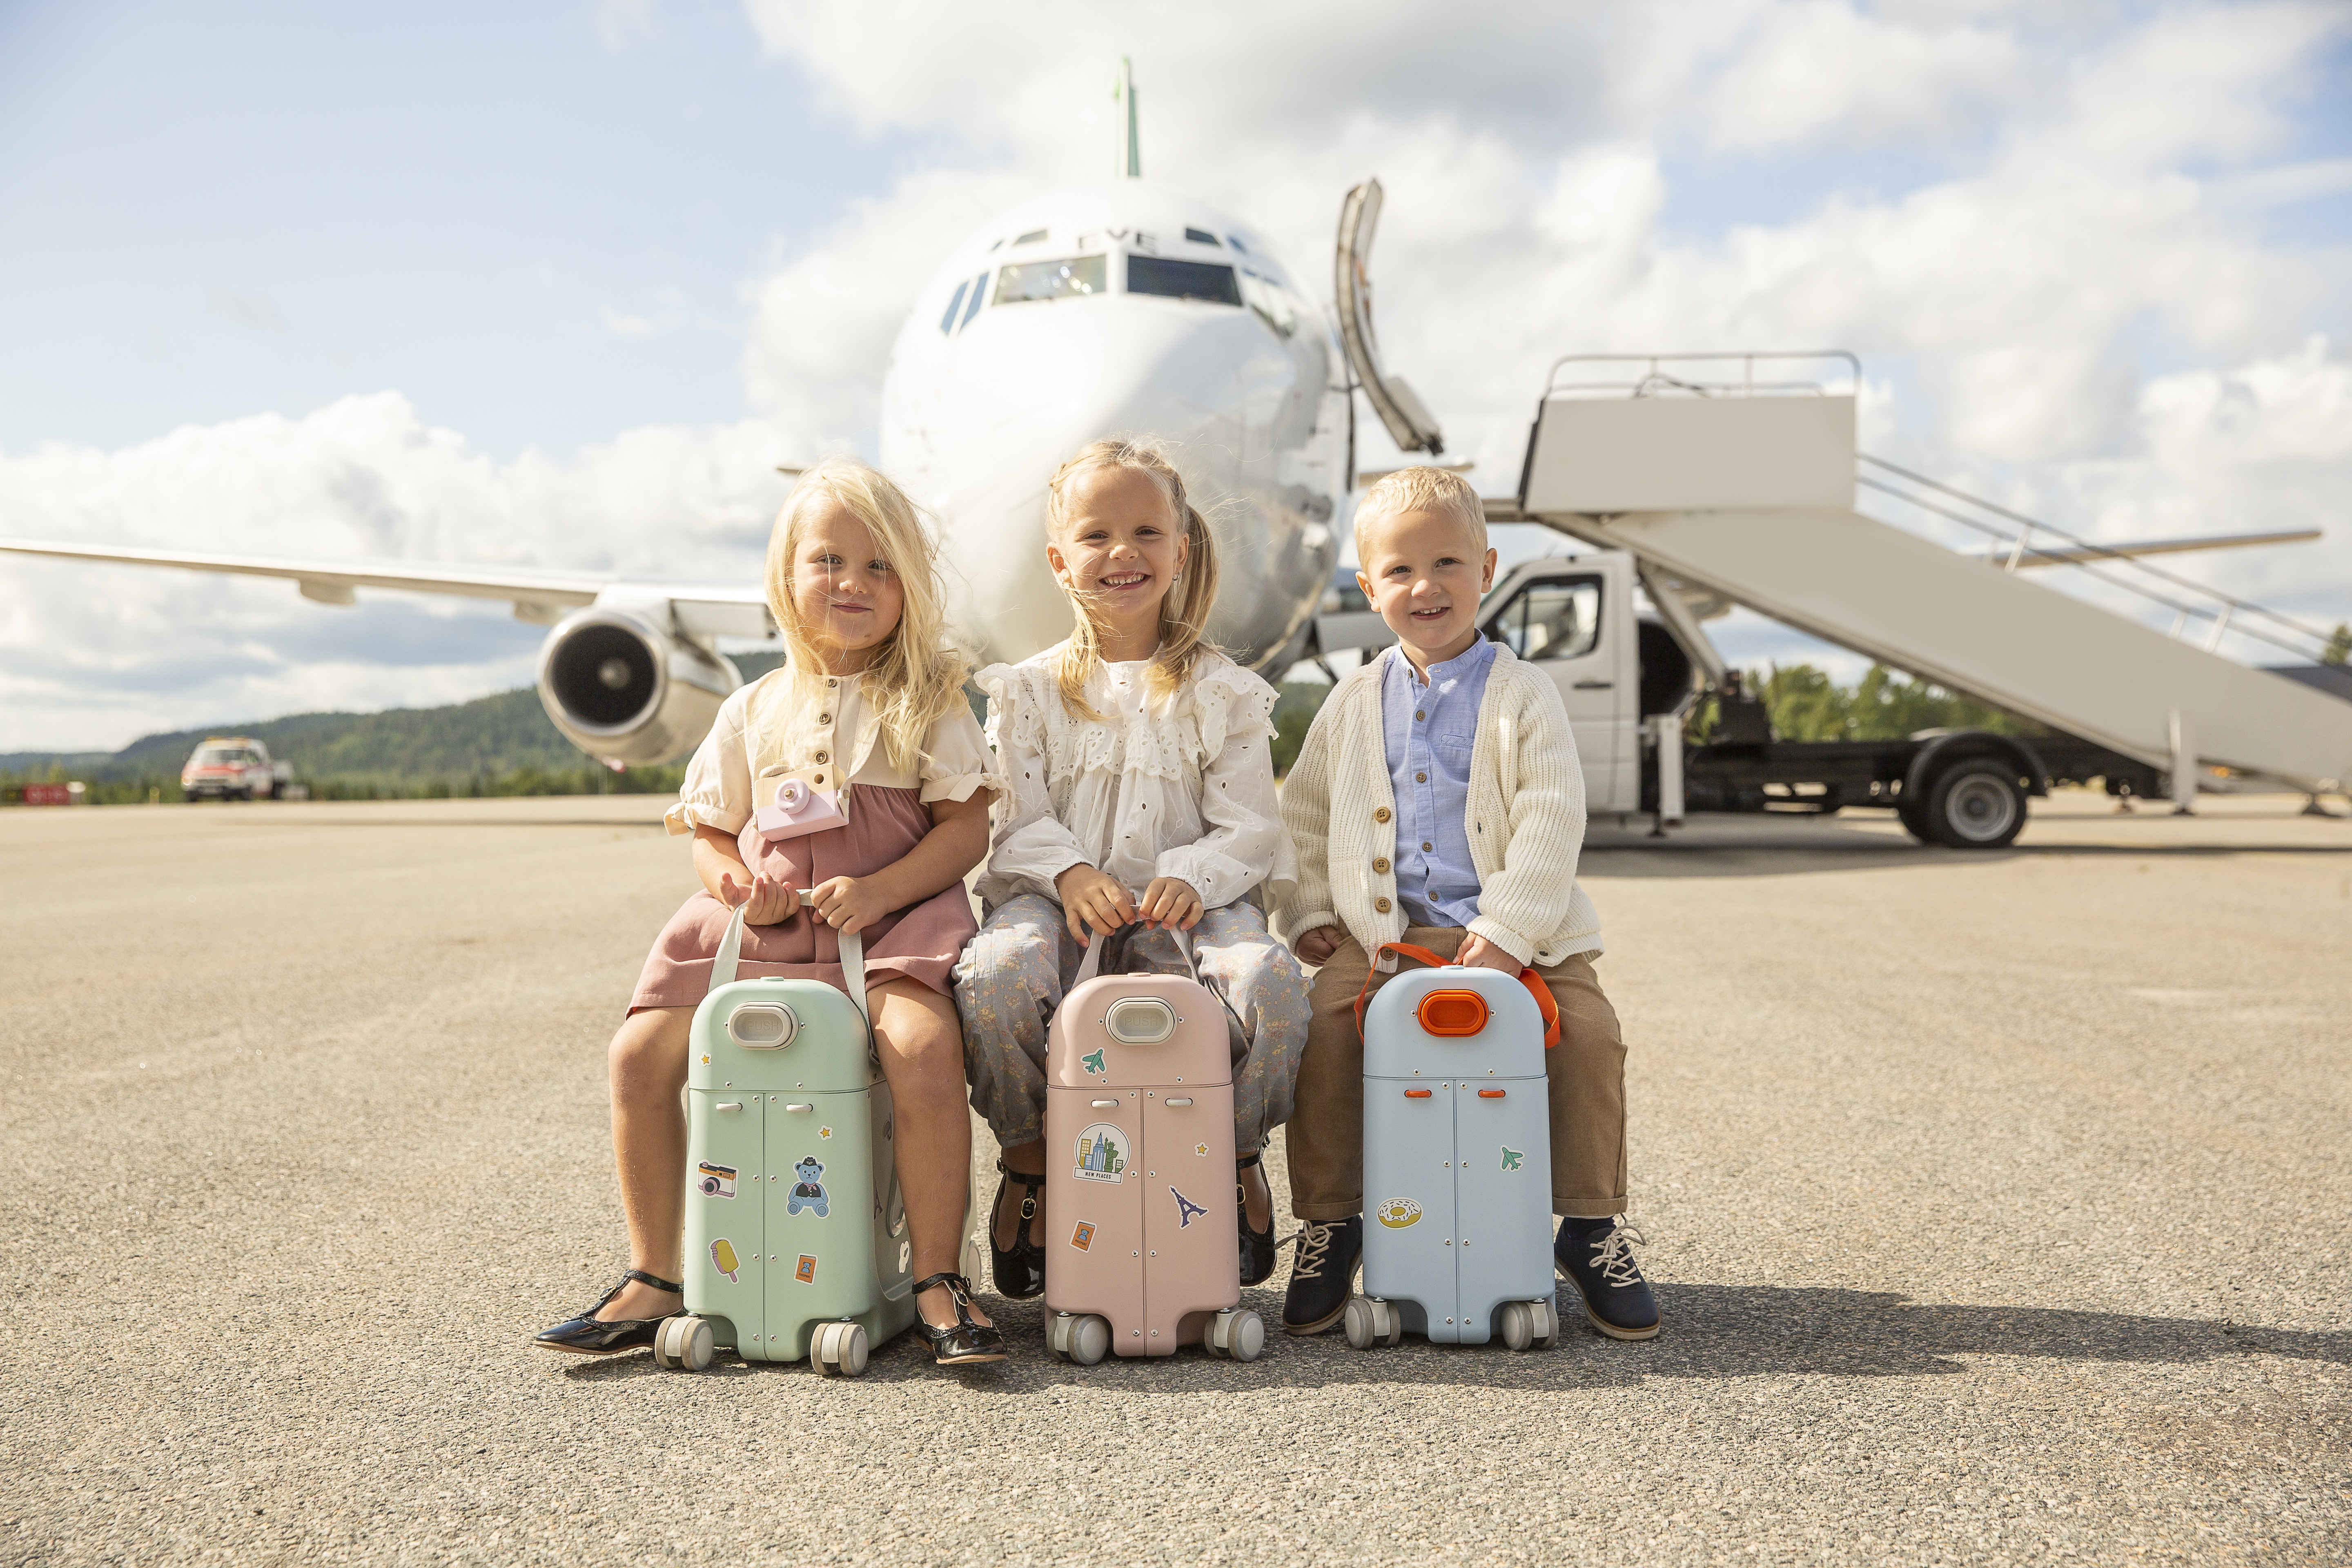 ride on suitcases by plane